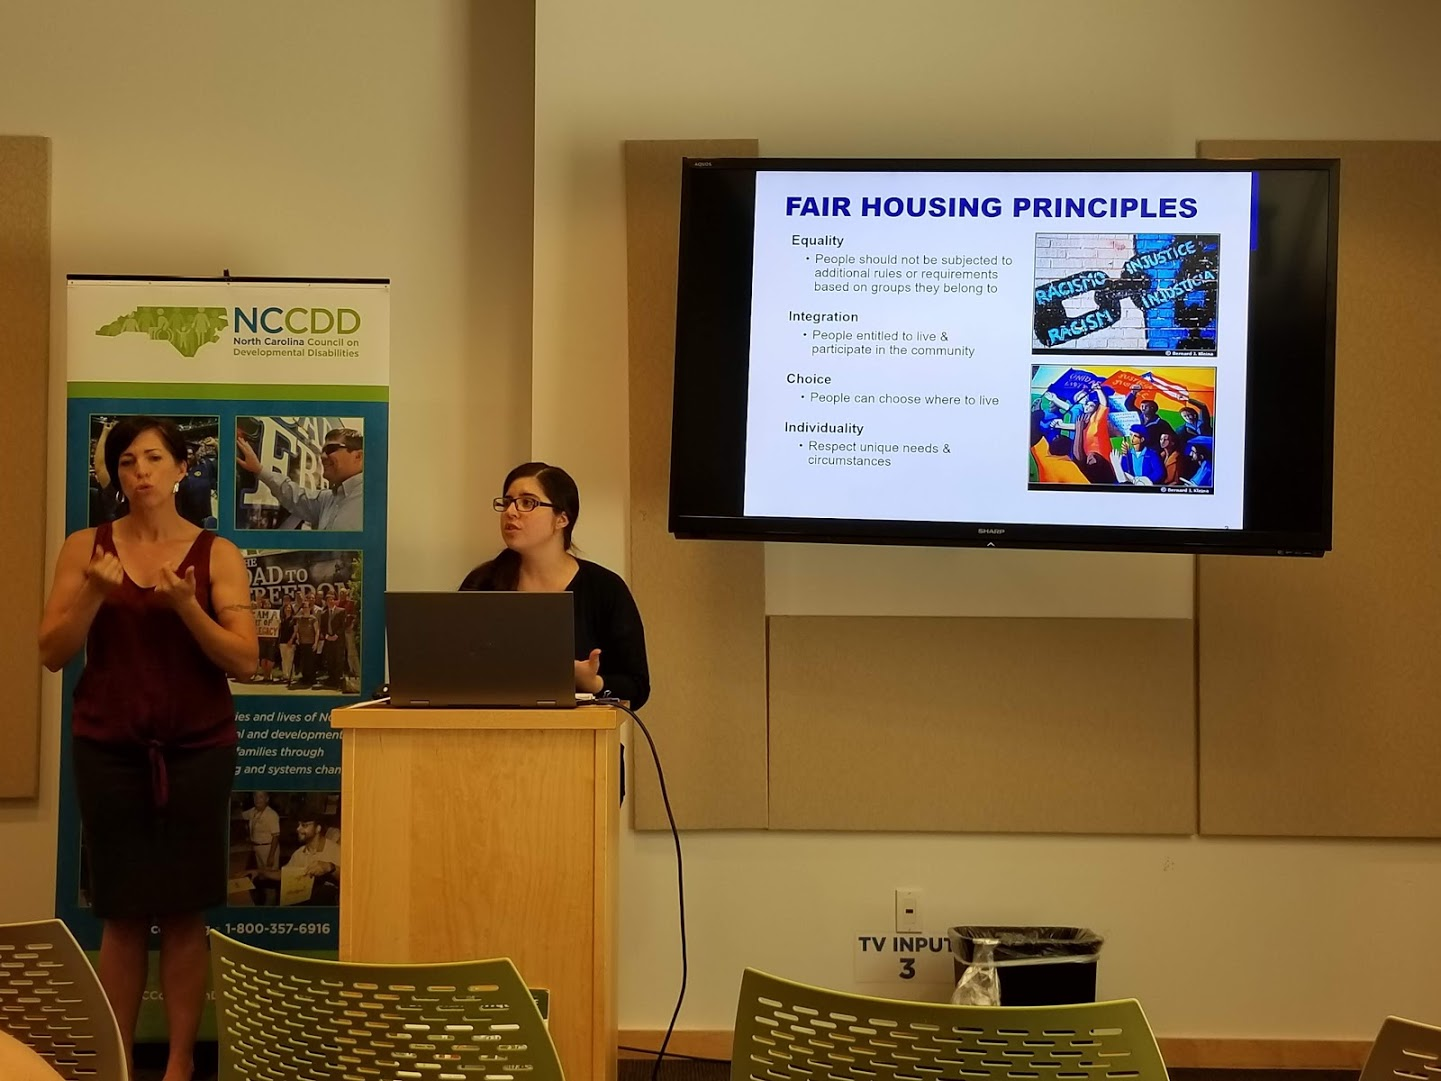 Lauren Brasil shows Fair Housing Principles PPT